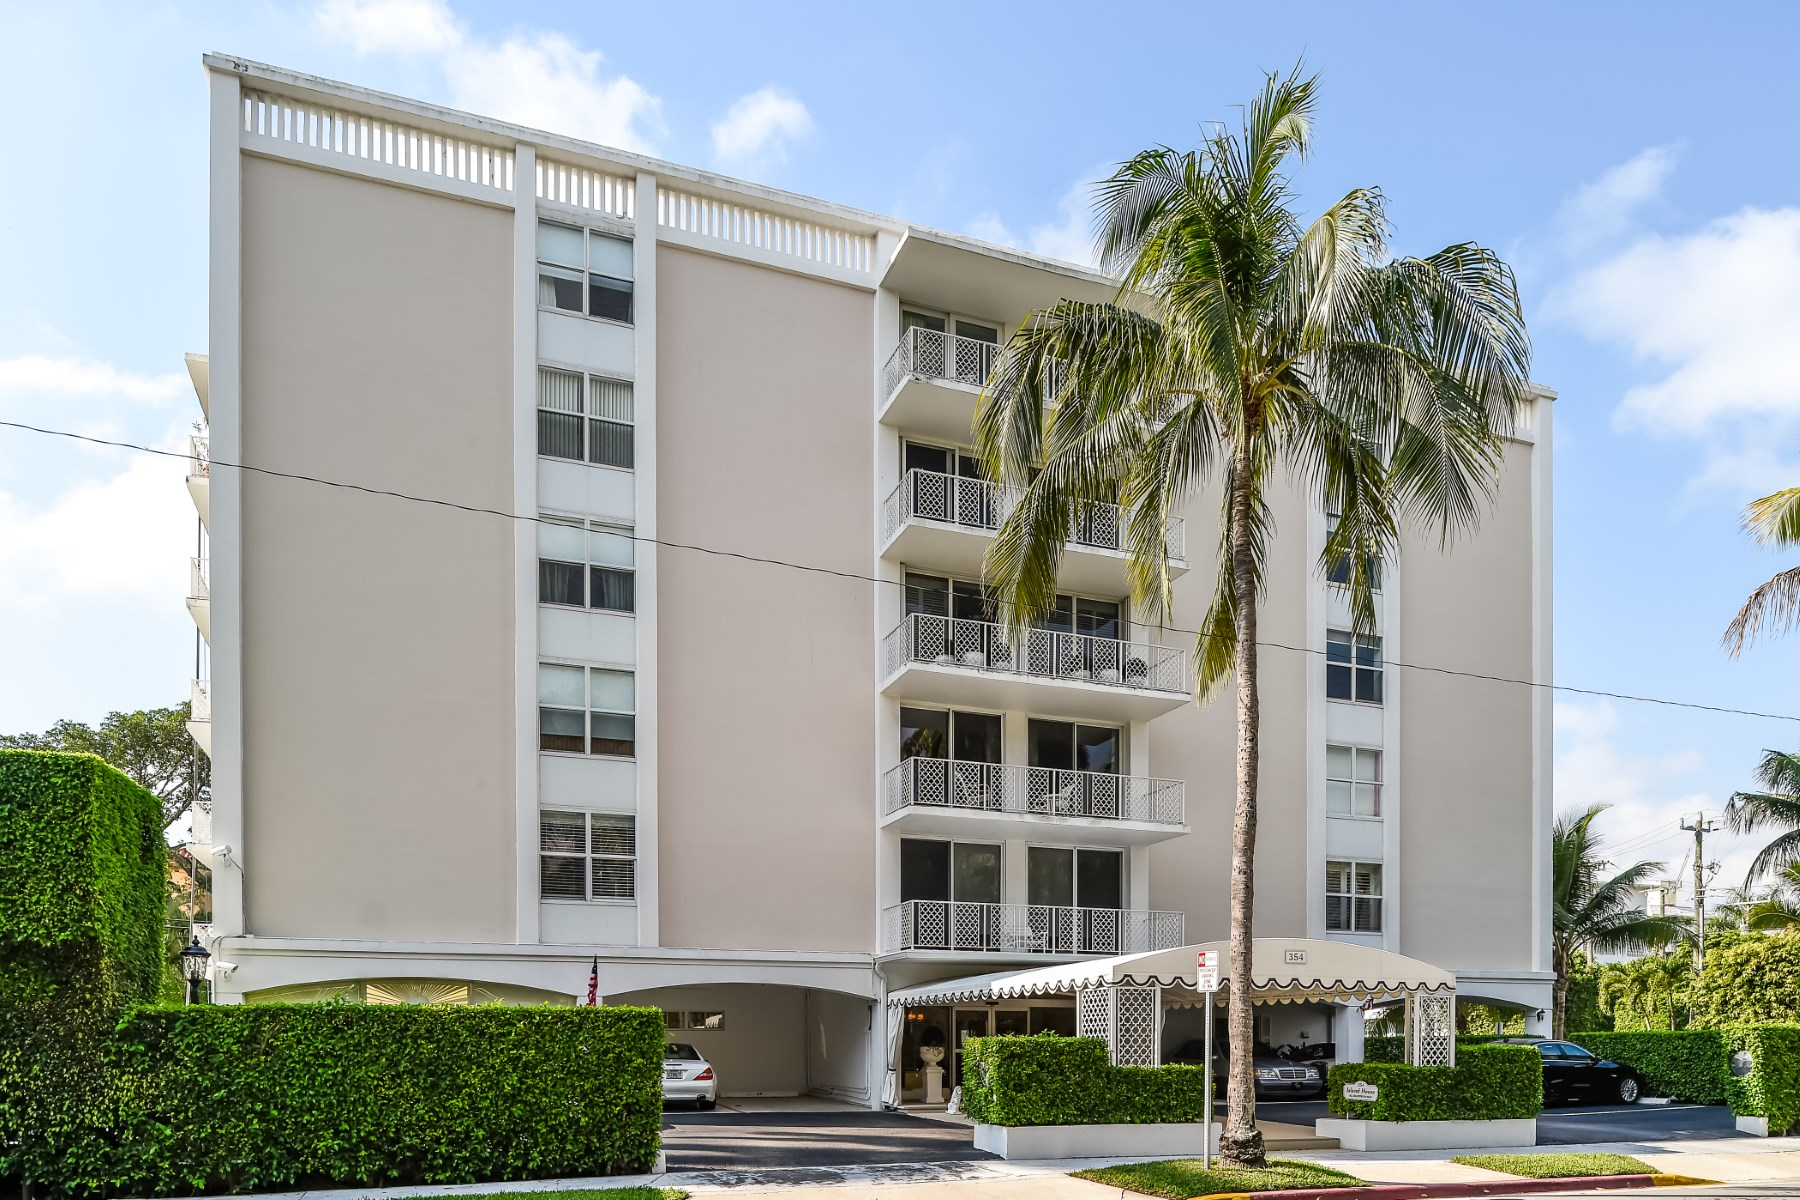 共管物業 為 出售 在 Close to Worth Avenue 354 Chilean Ave Apt 2C Palm Beach, 佛羅里達州, 33480 美國